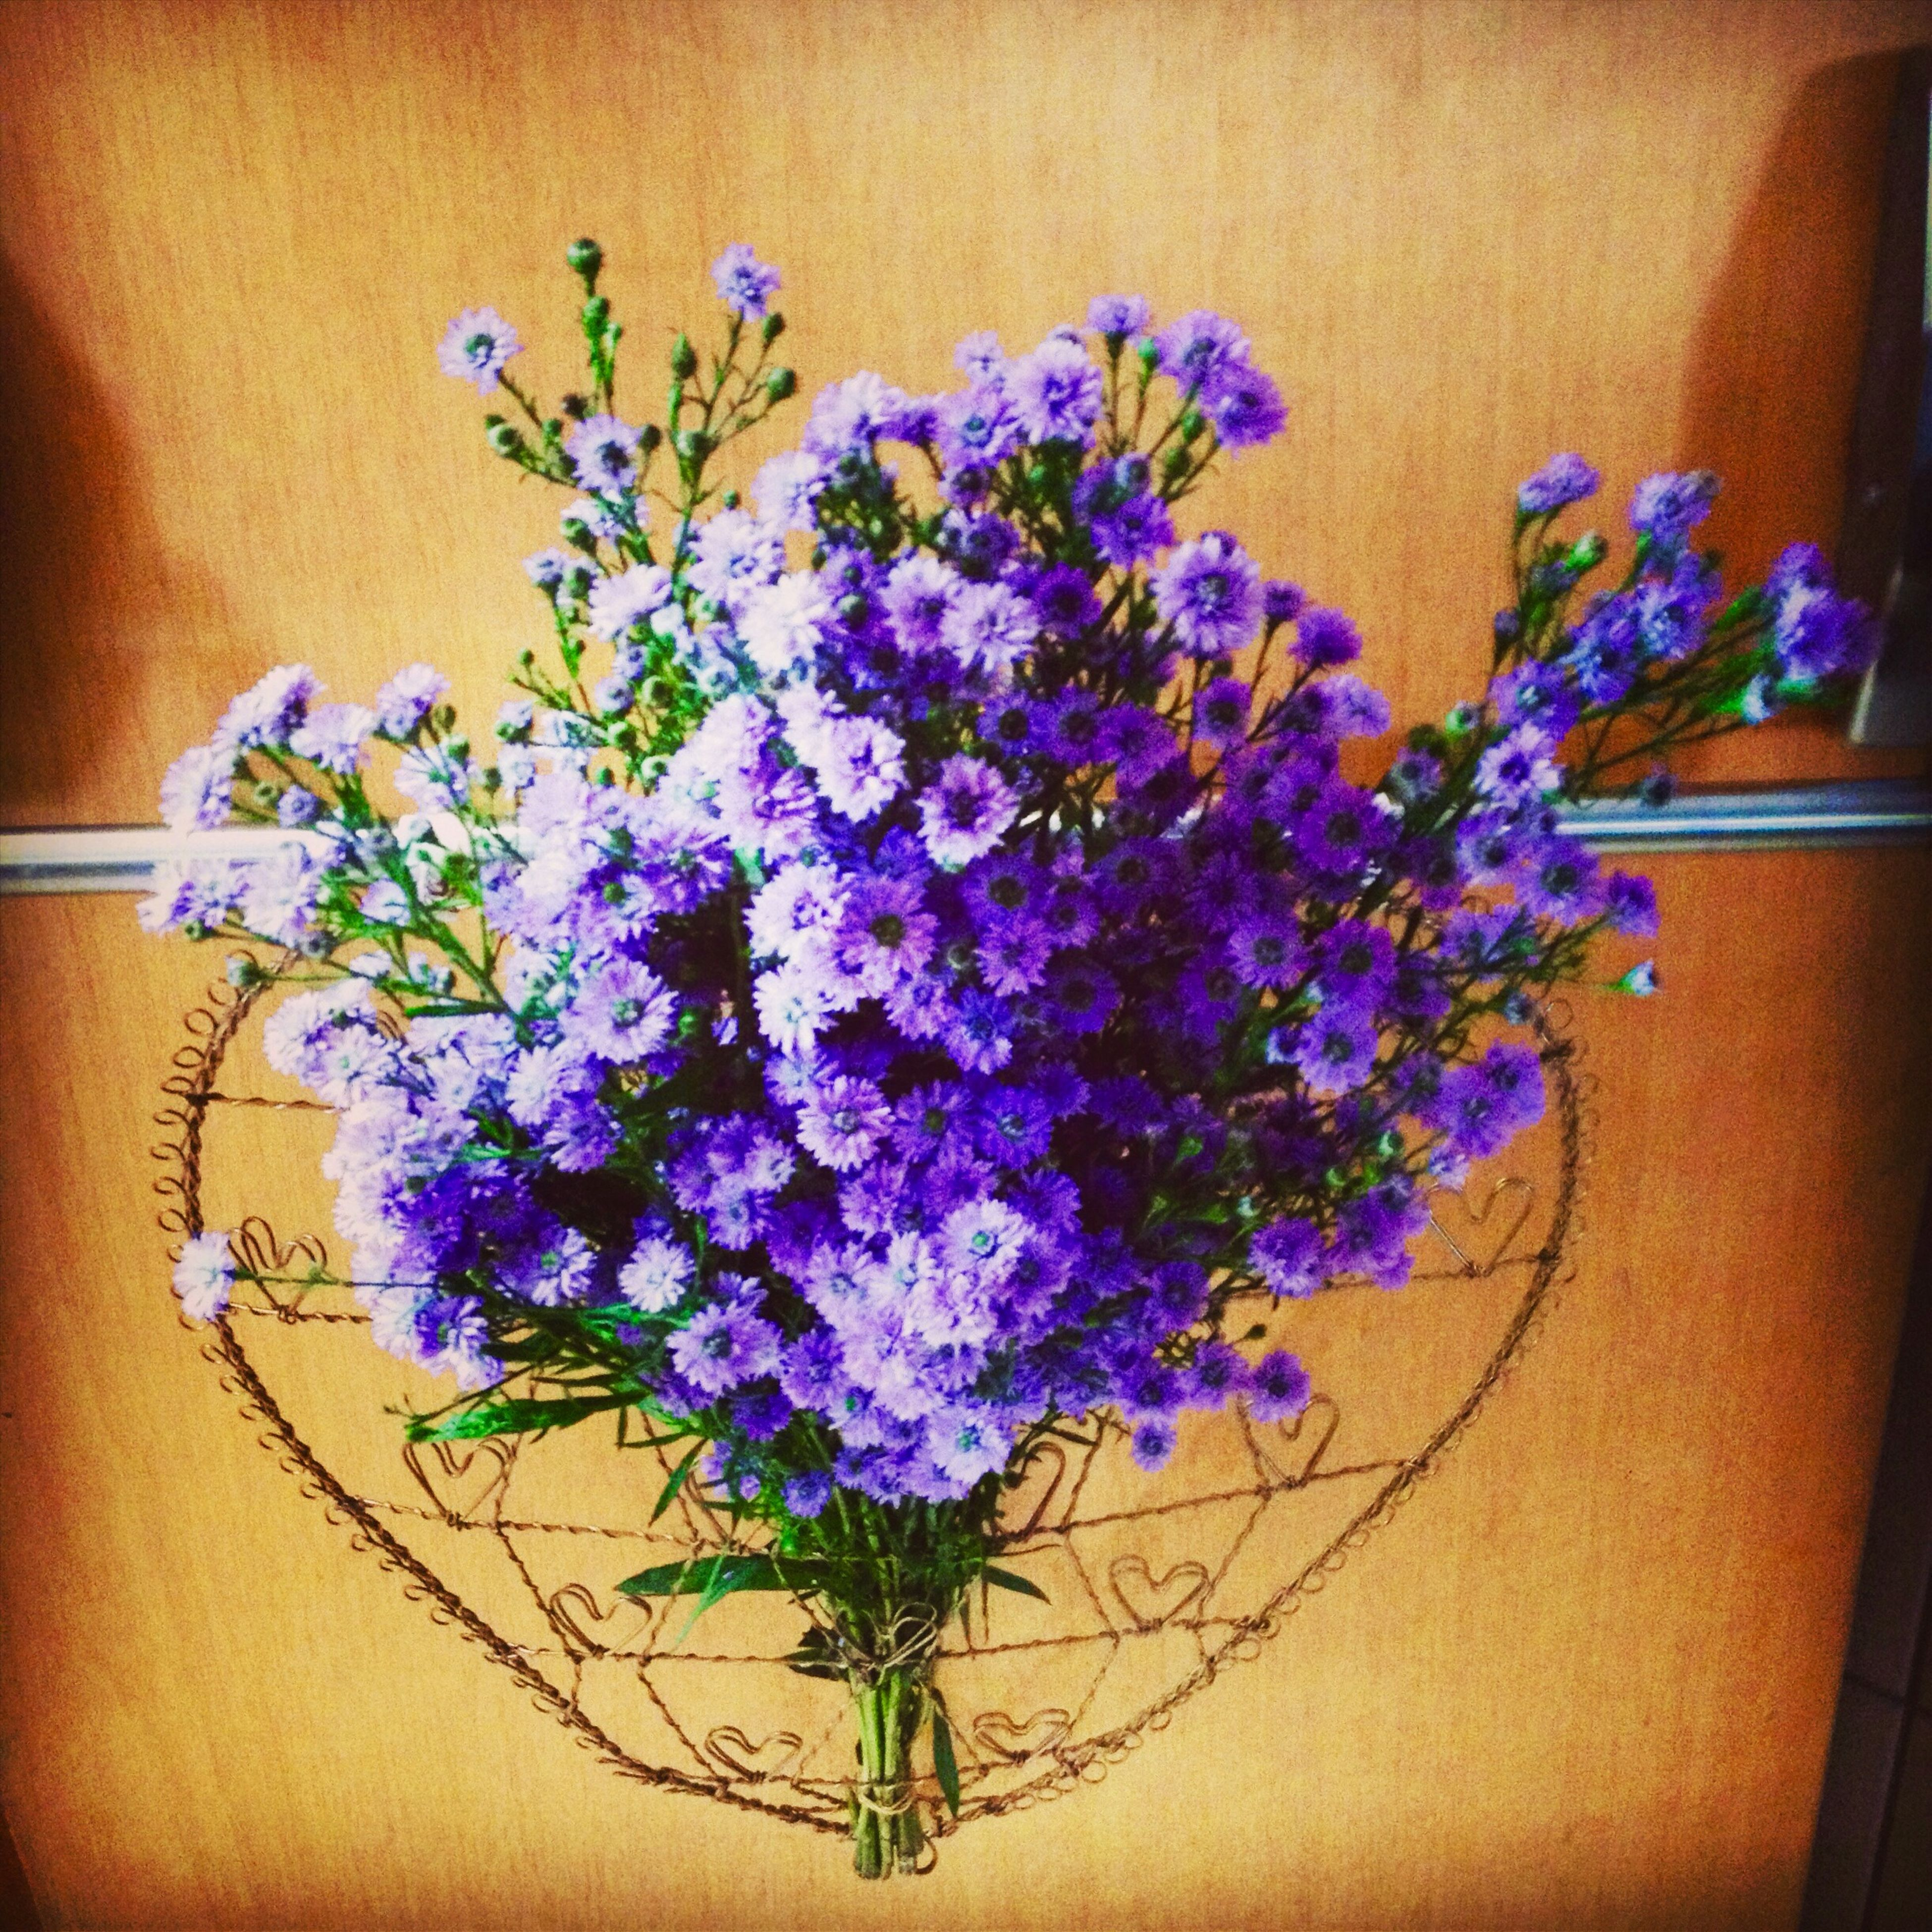 flower, freshness, fragility, petal, growth, indoors, plant, beauty in nature, bunch of flowers, vase, potted plant, flower head, nature, purple, stem, close-up, in bloom, blossom, decoration, wall - building feature